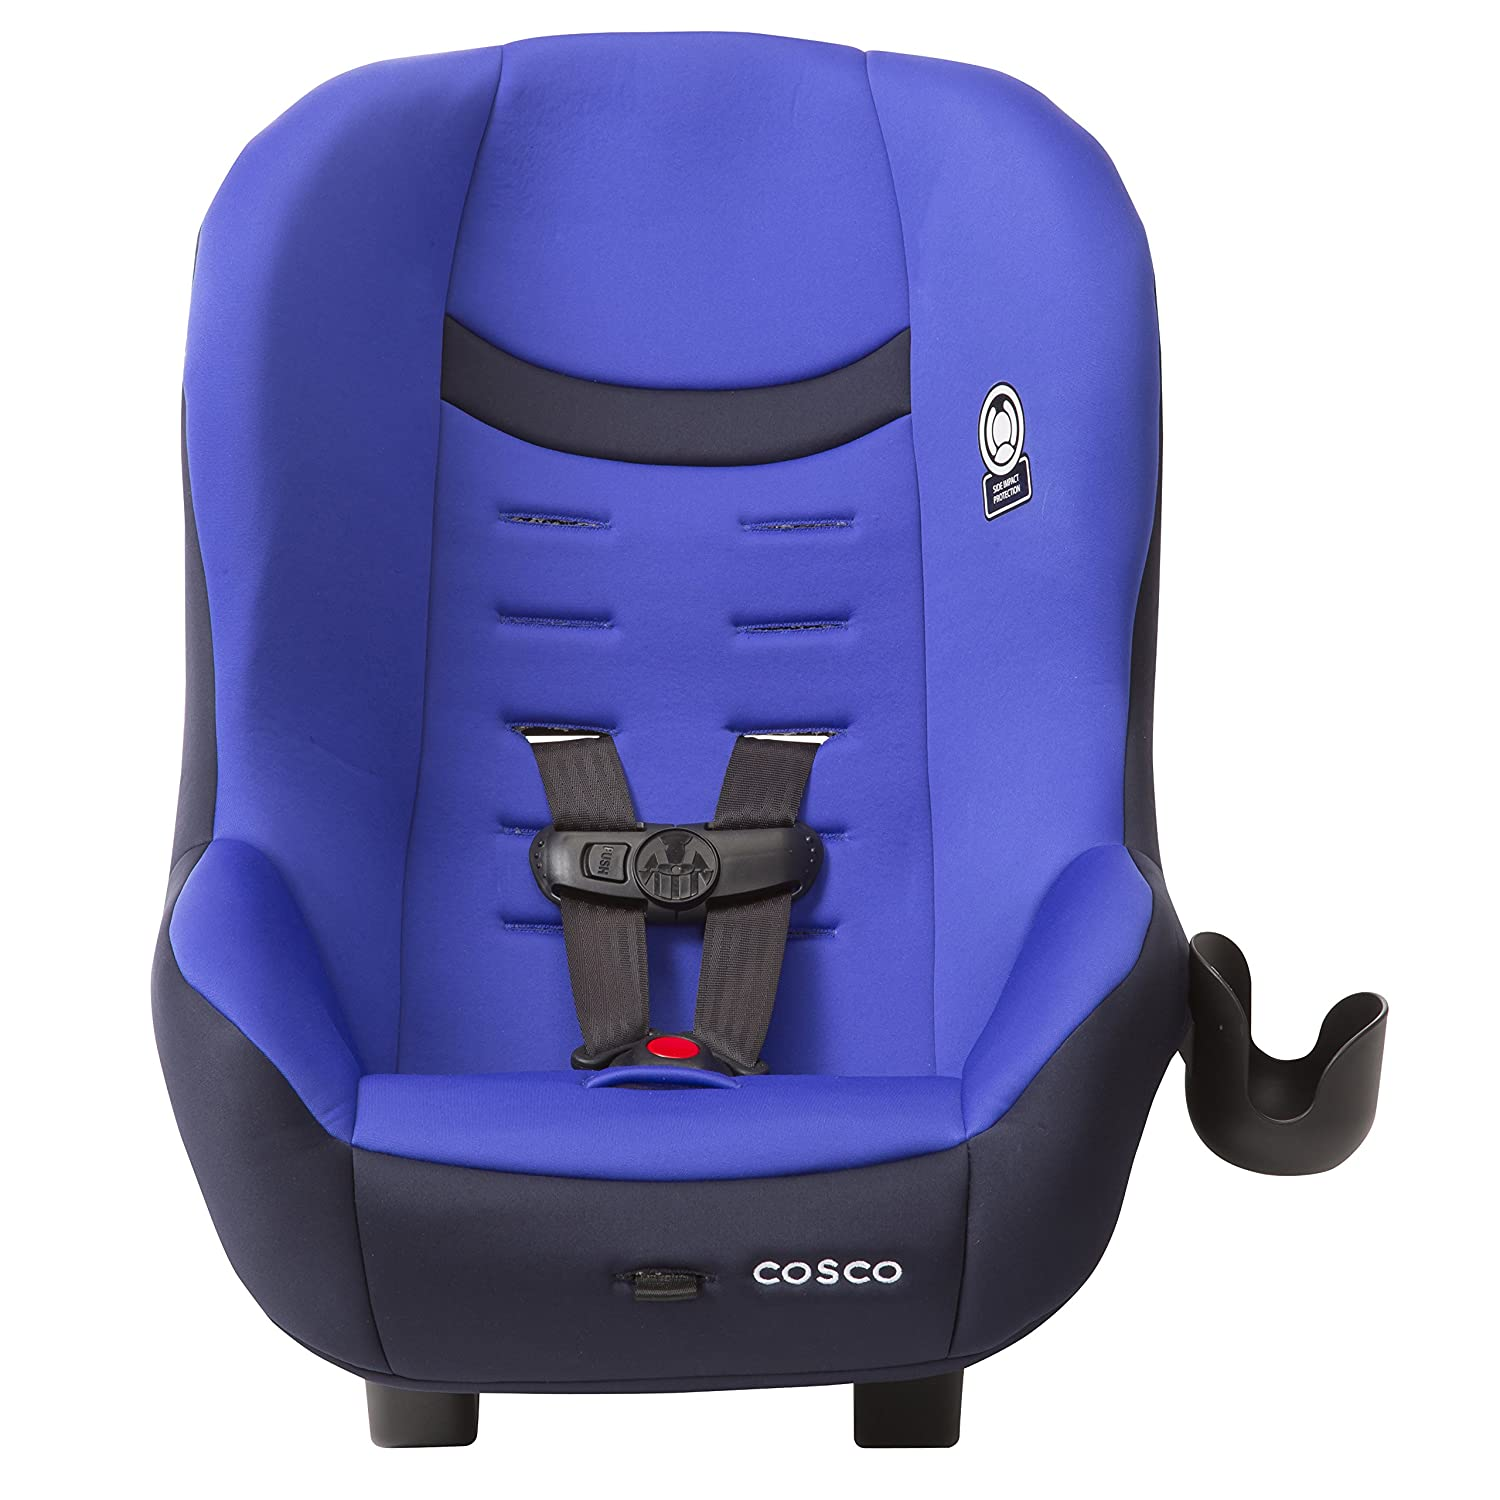 Cosco 22182CDEO Scenera Next Convertible Car Seat - River Run, Blue Dorel Juvenile